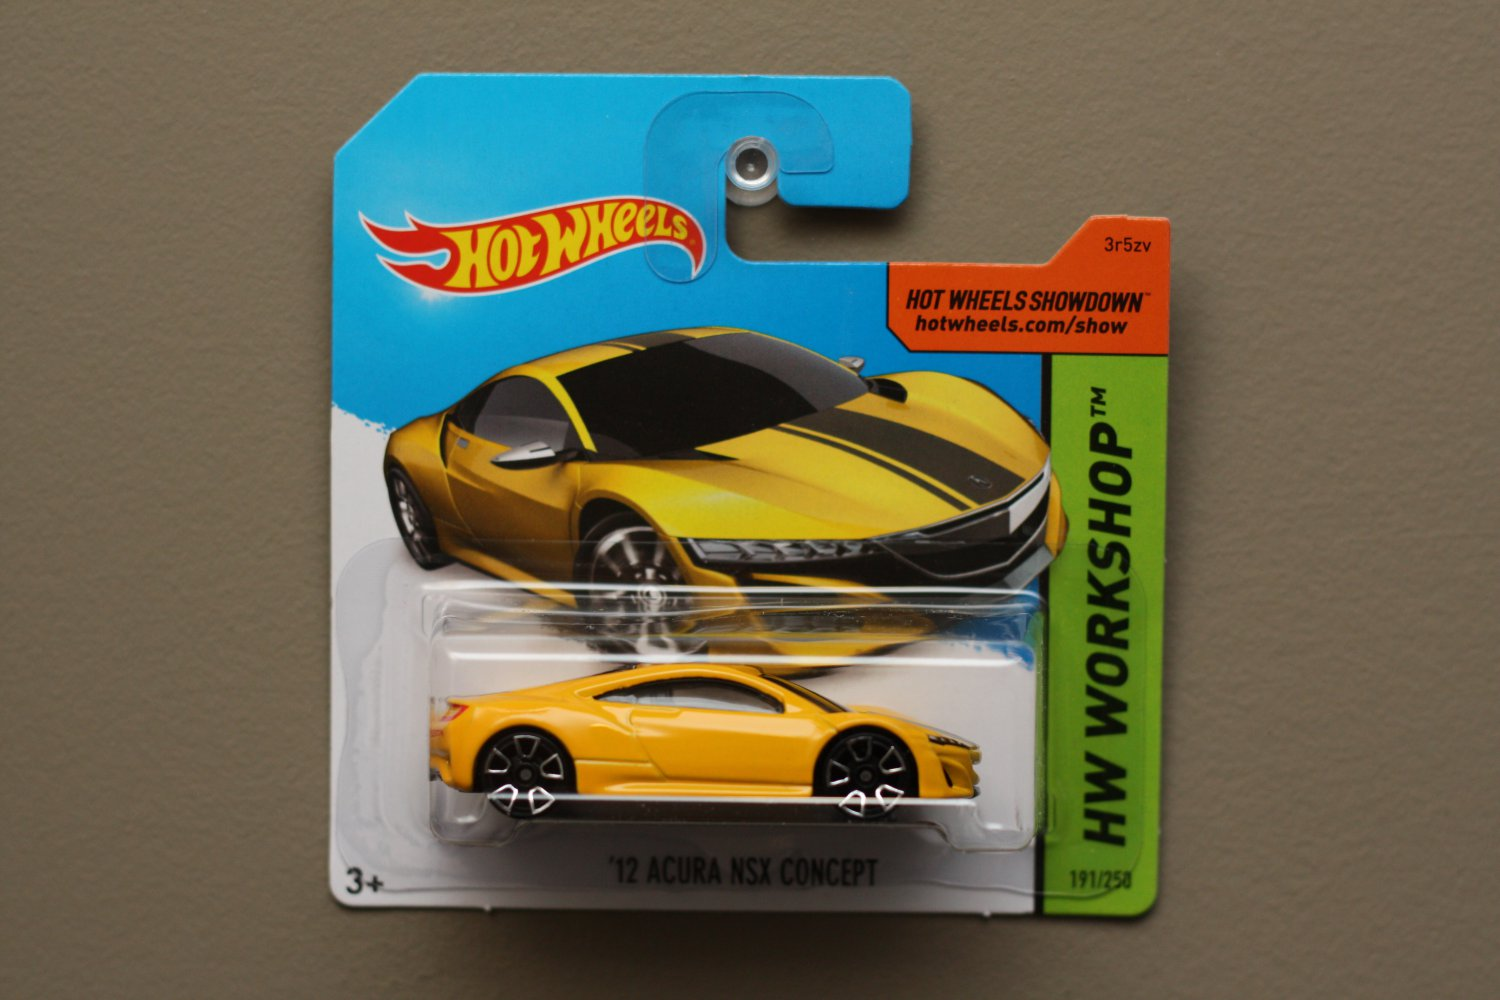 Hot Wheels 2015 Hw Workshop 12 Acura Nsx Concept Yellow